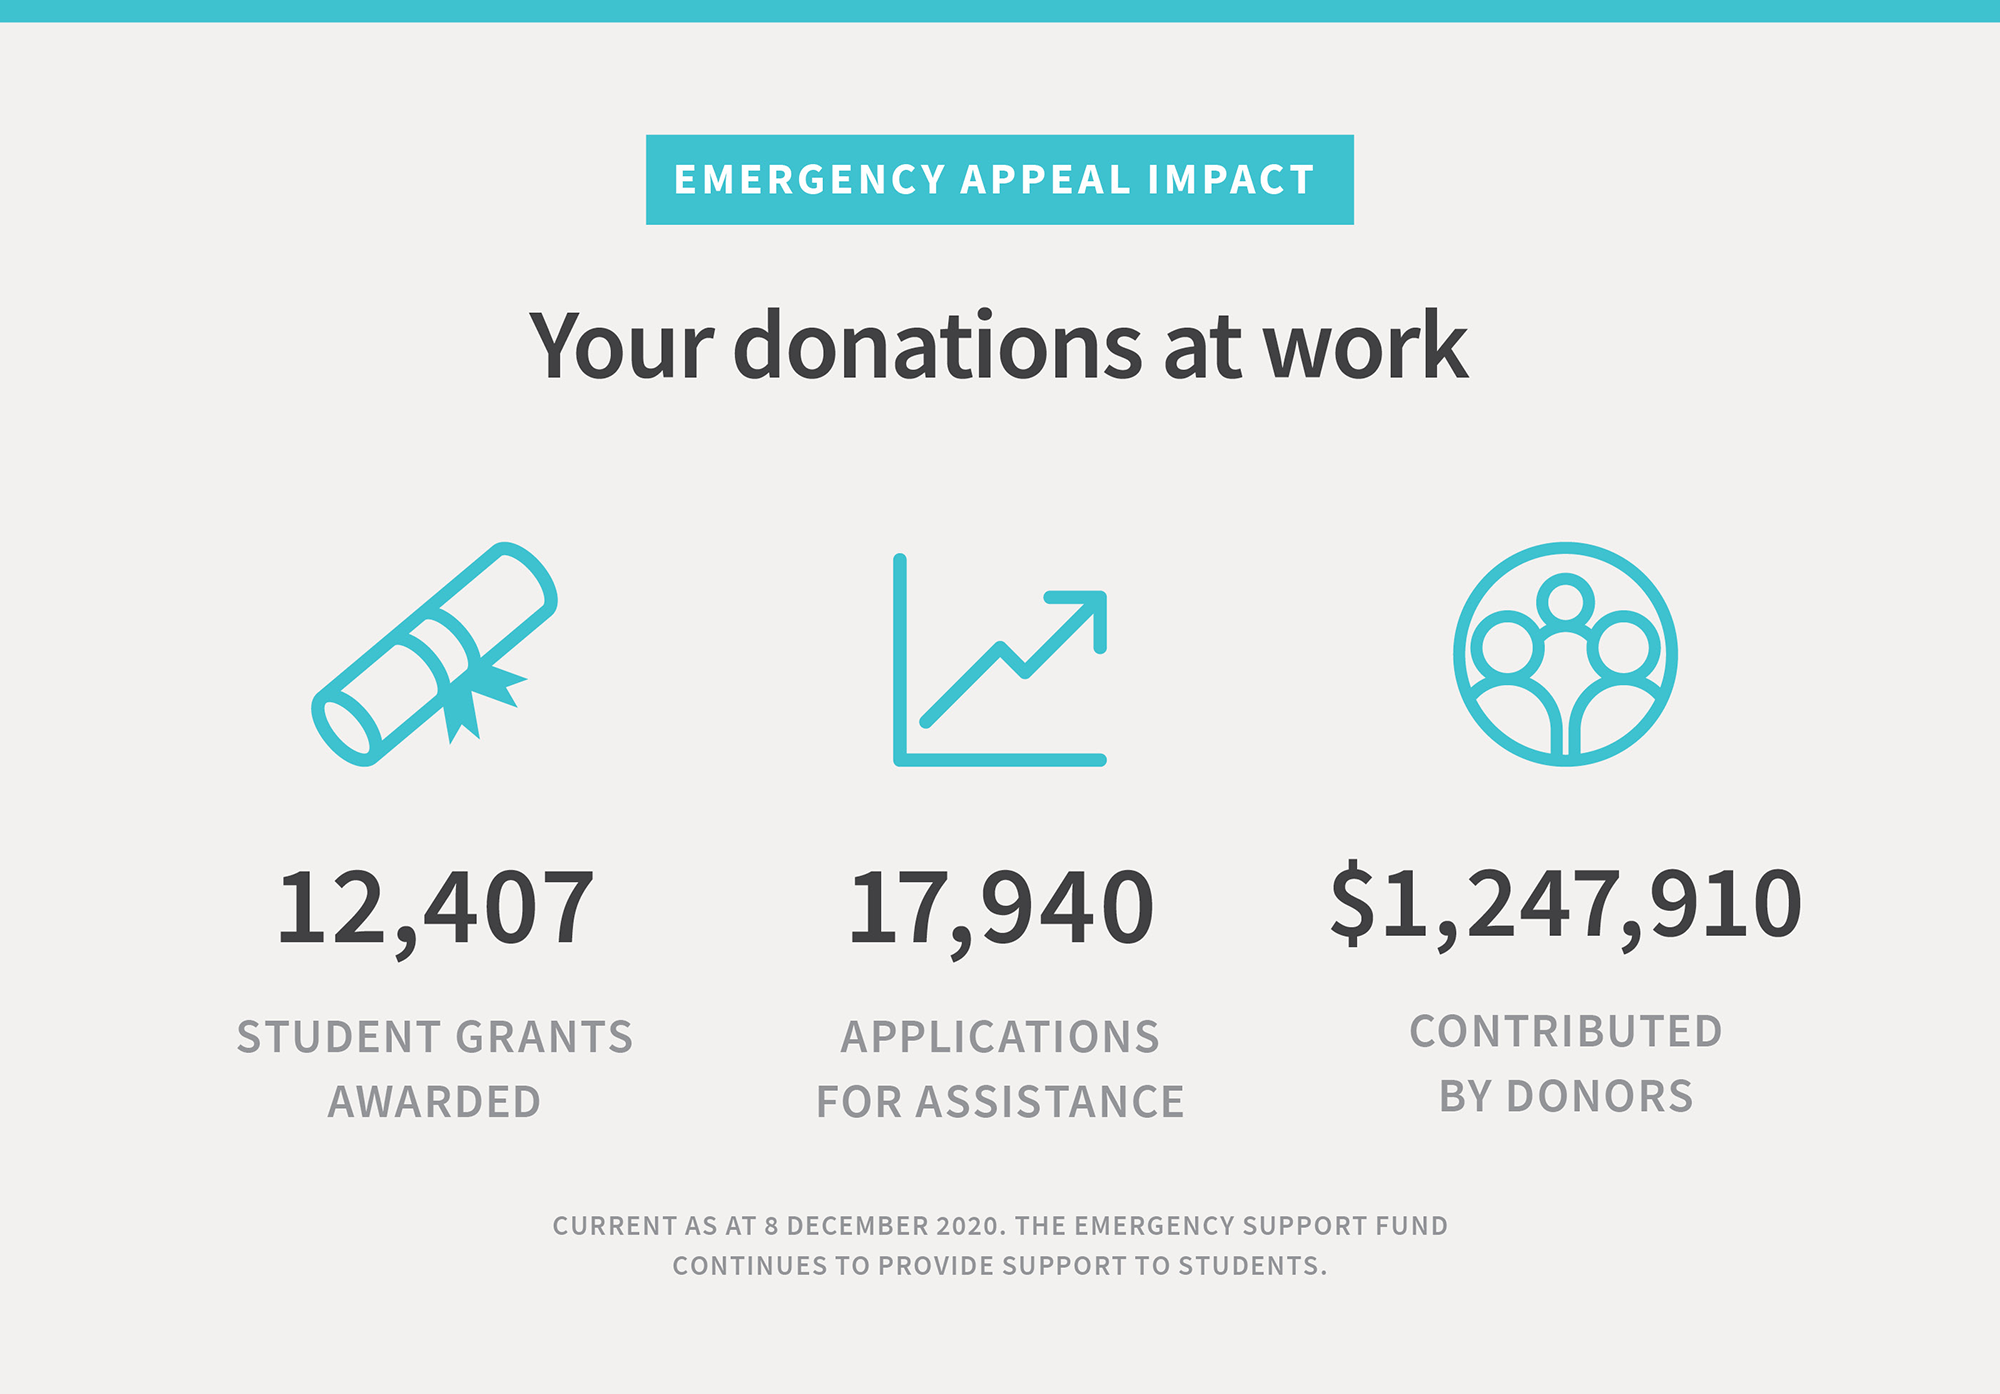 Your donations at work: 12,203 student grants awarded, 17,932 applications for assistance, $1,245,101 contributed by donors